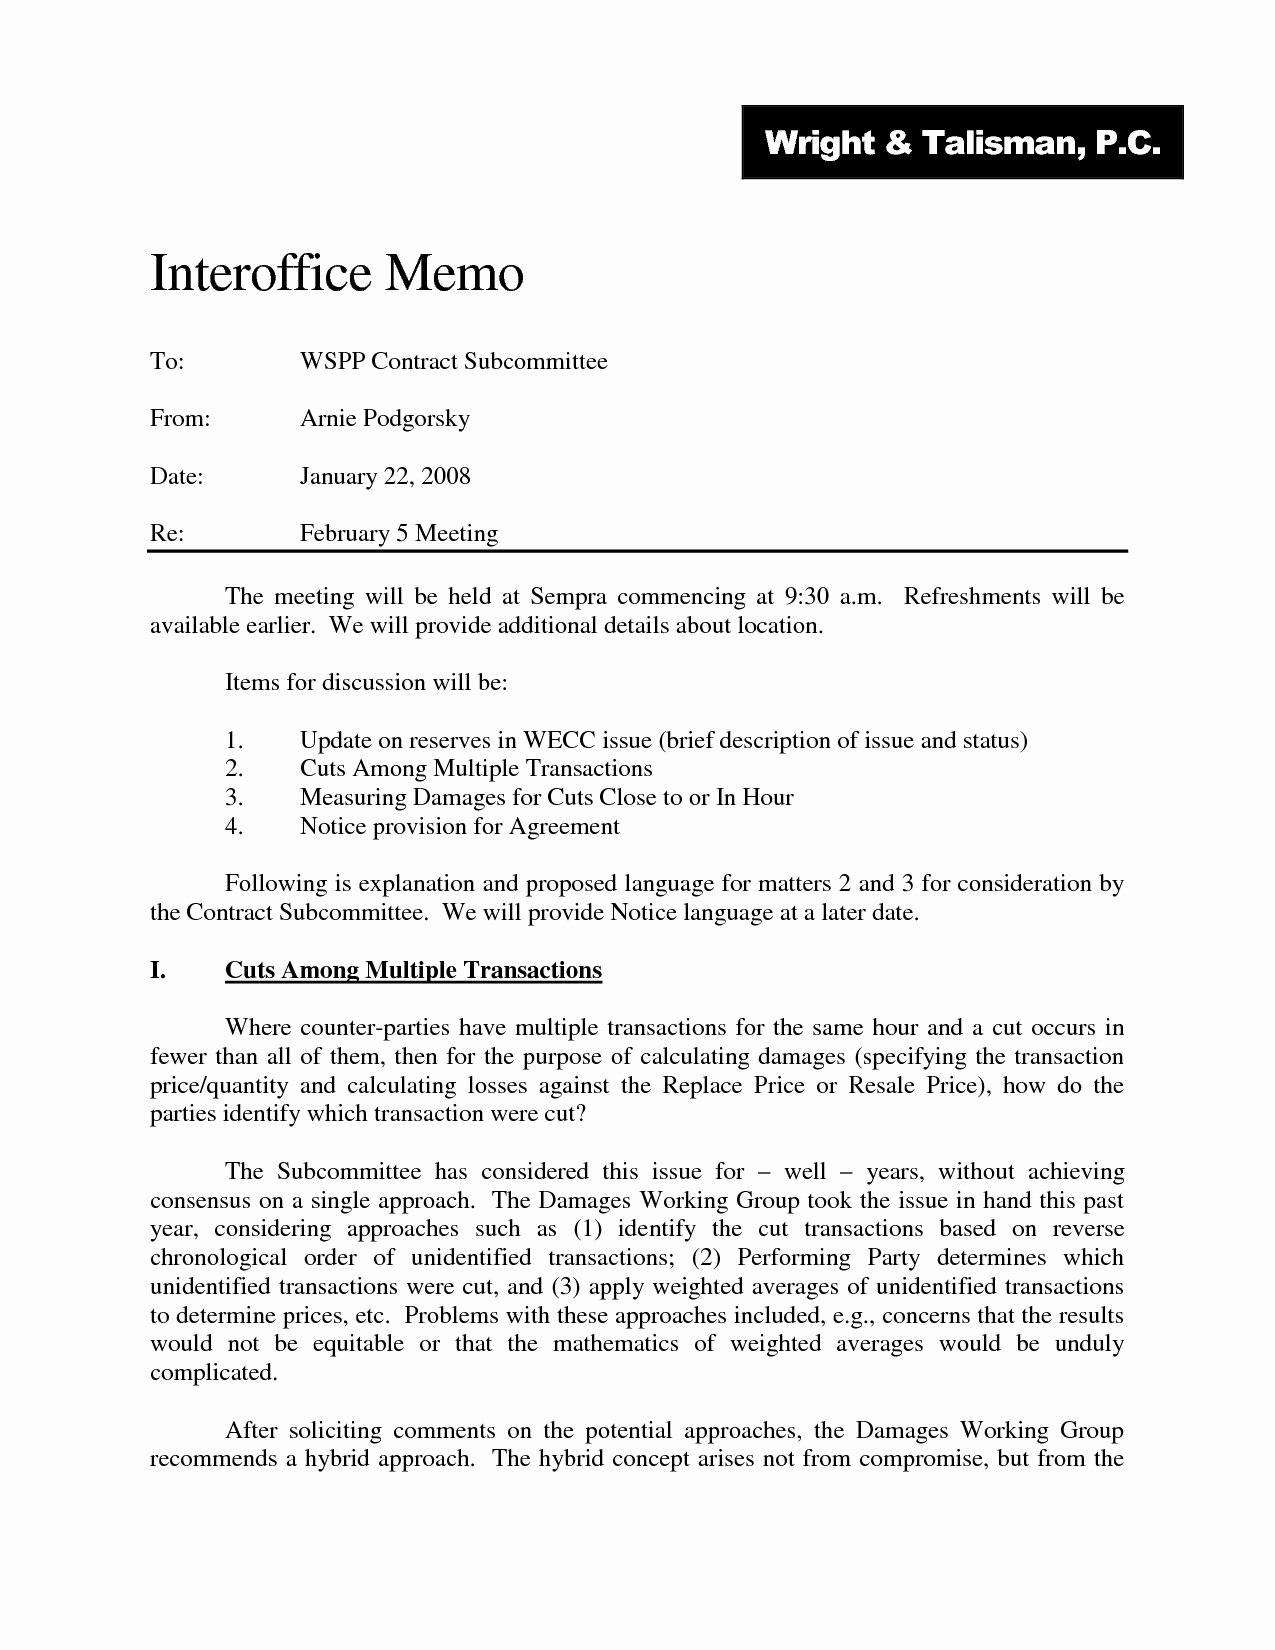 Sample Legal Memo format Luxury Legal Fice Memo format